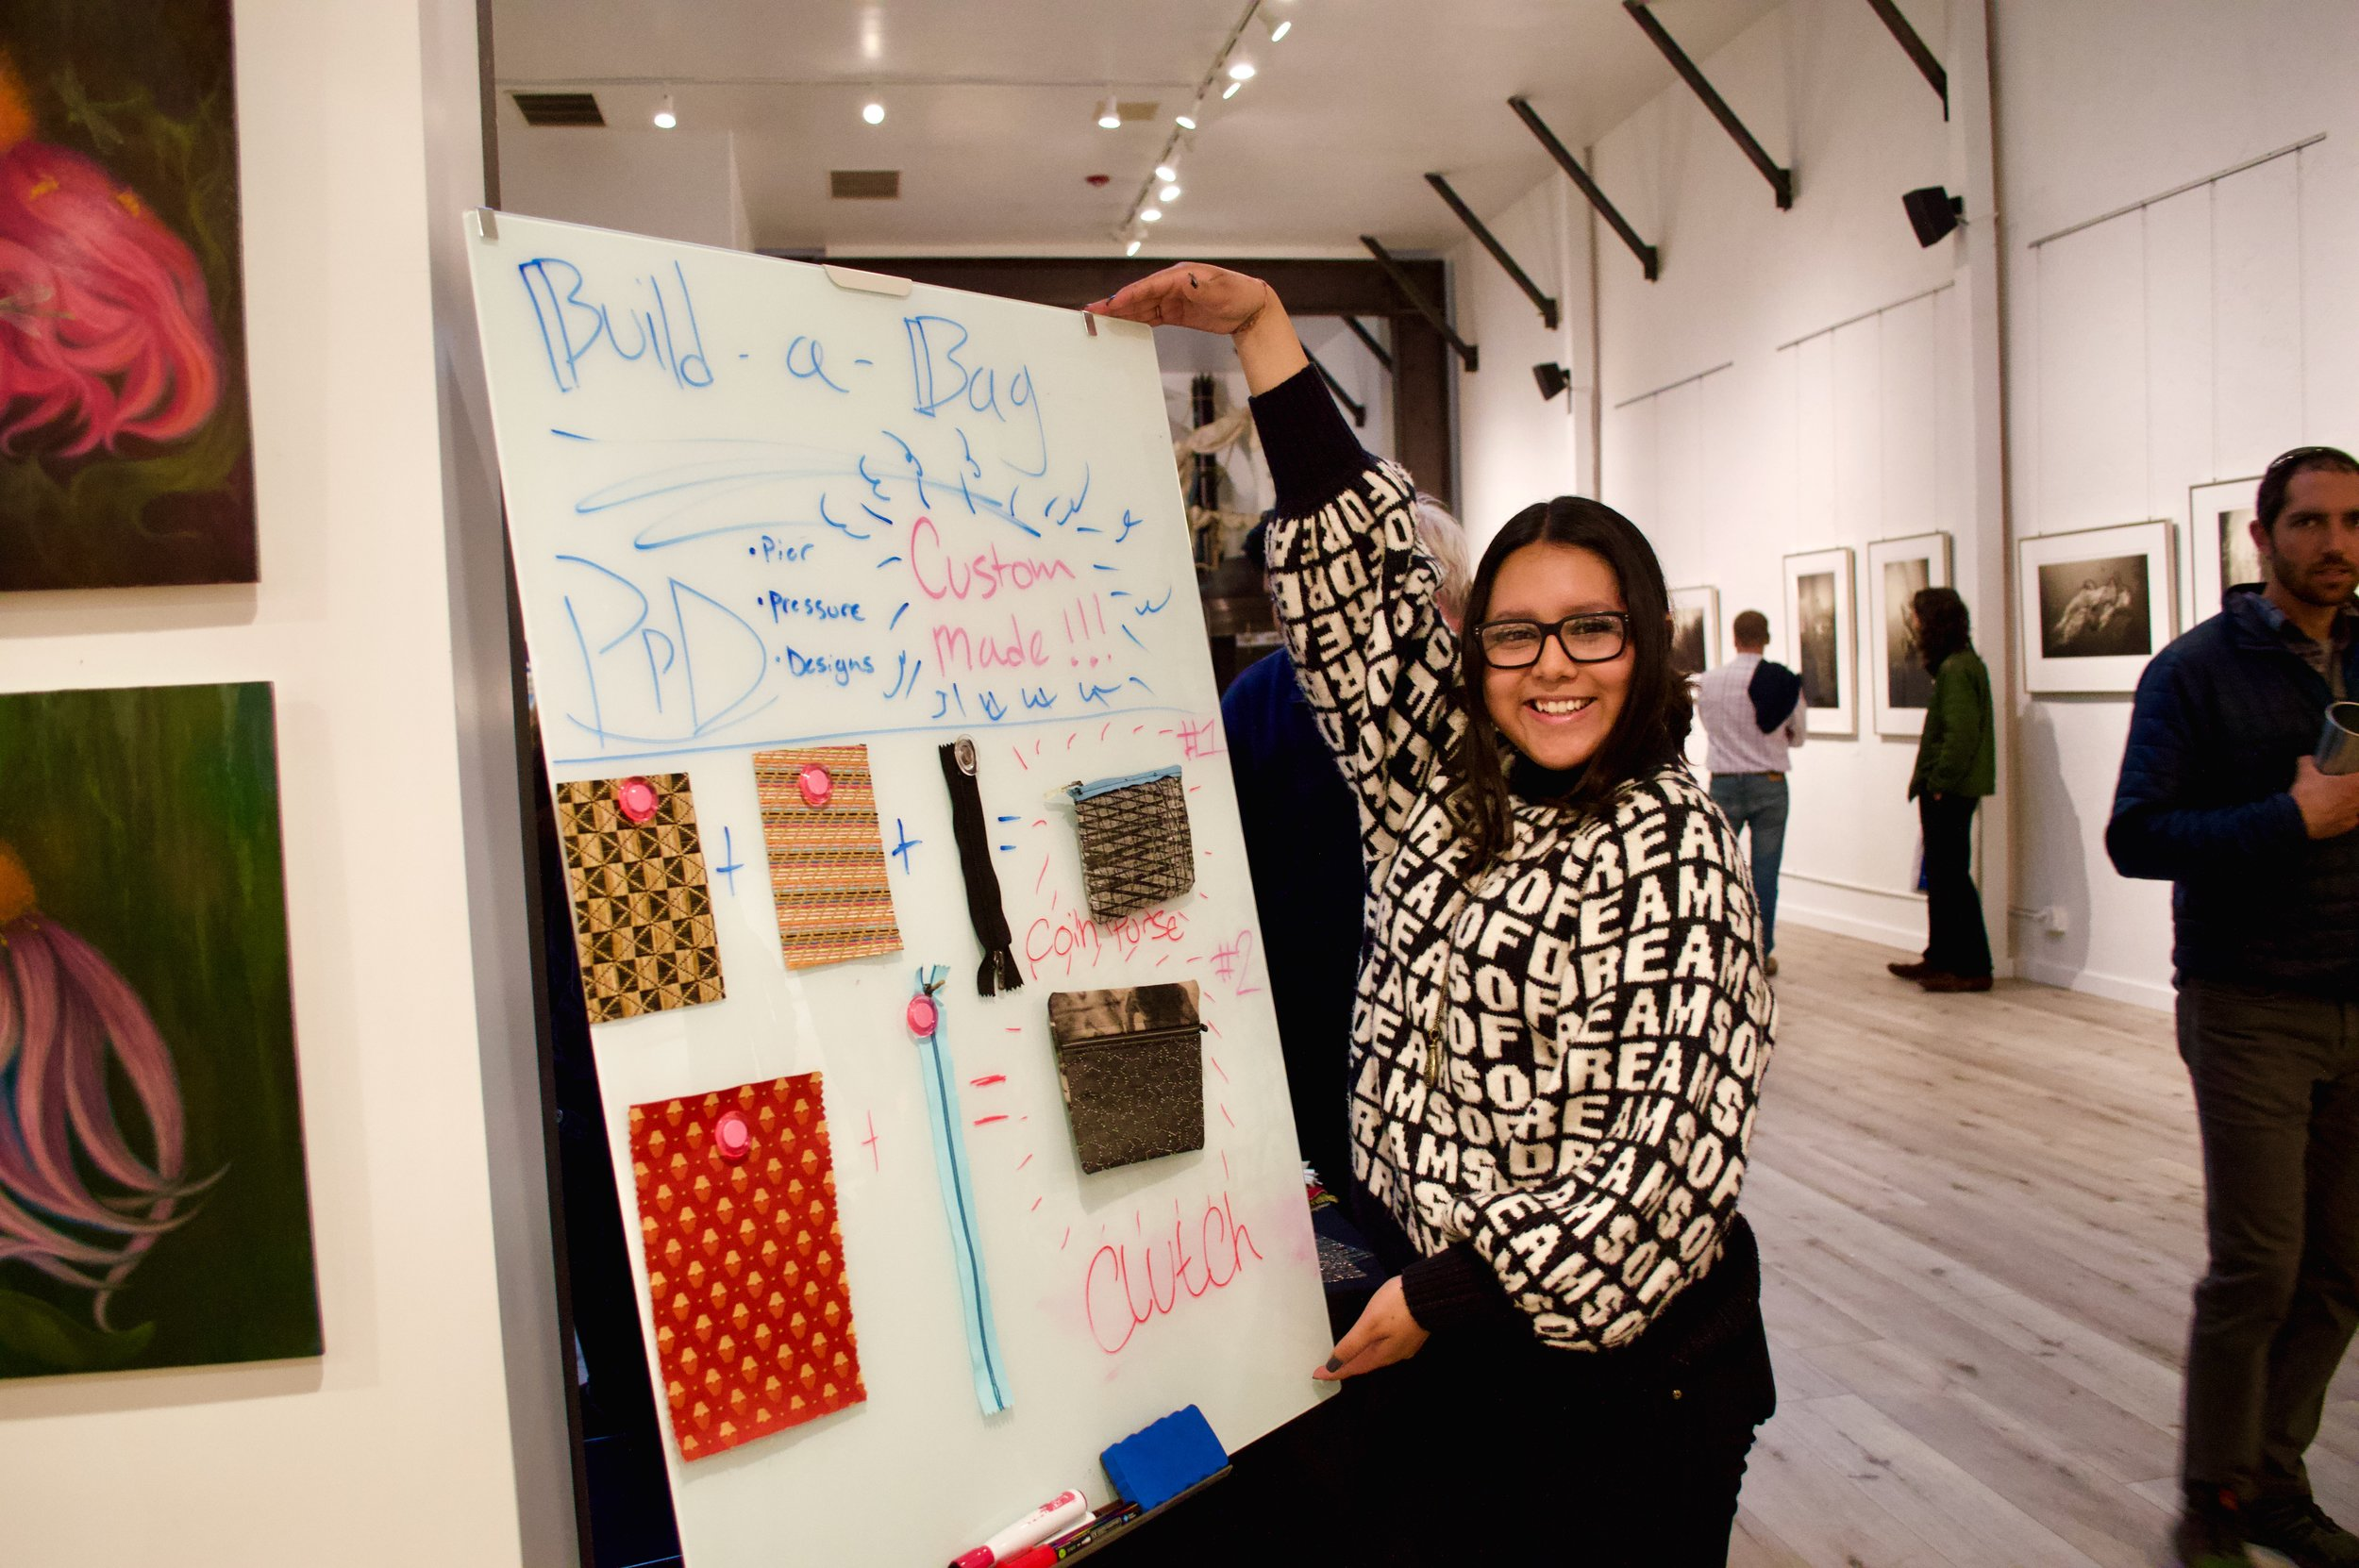 Mayte posing in front of a custom PPD bag sign at 1st Thursday